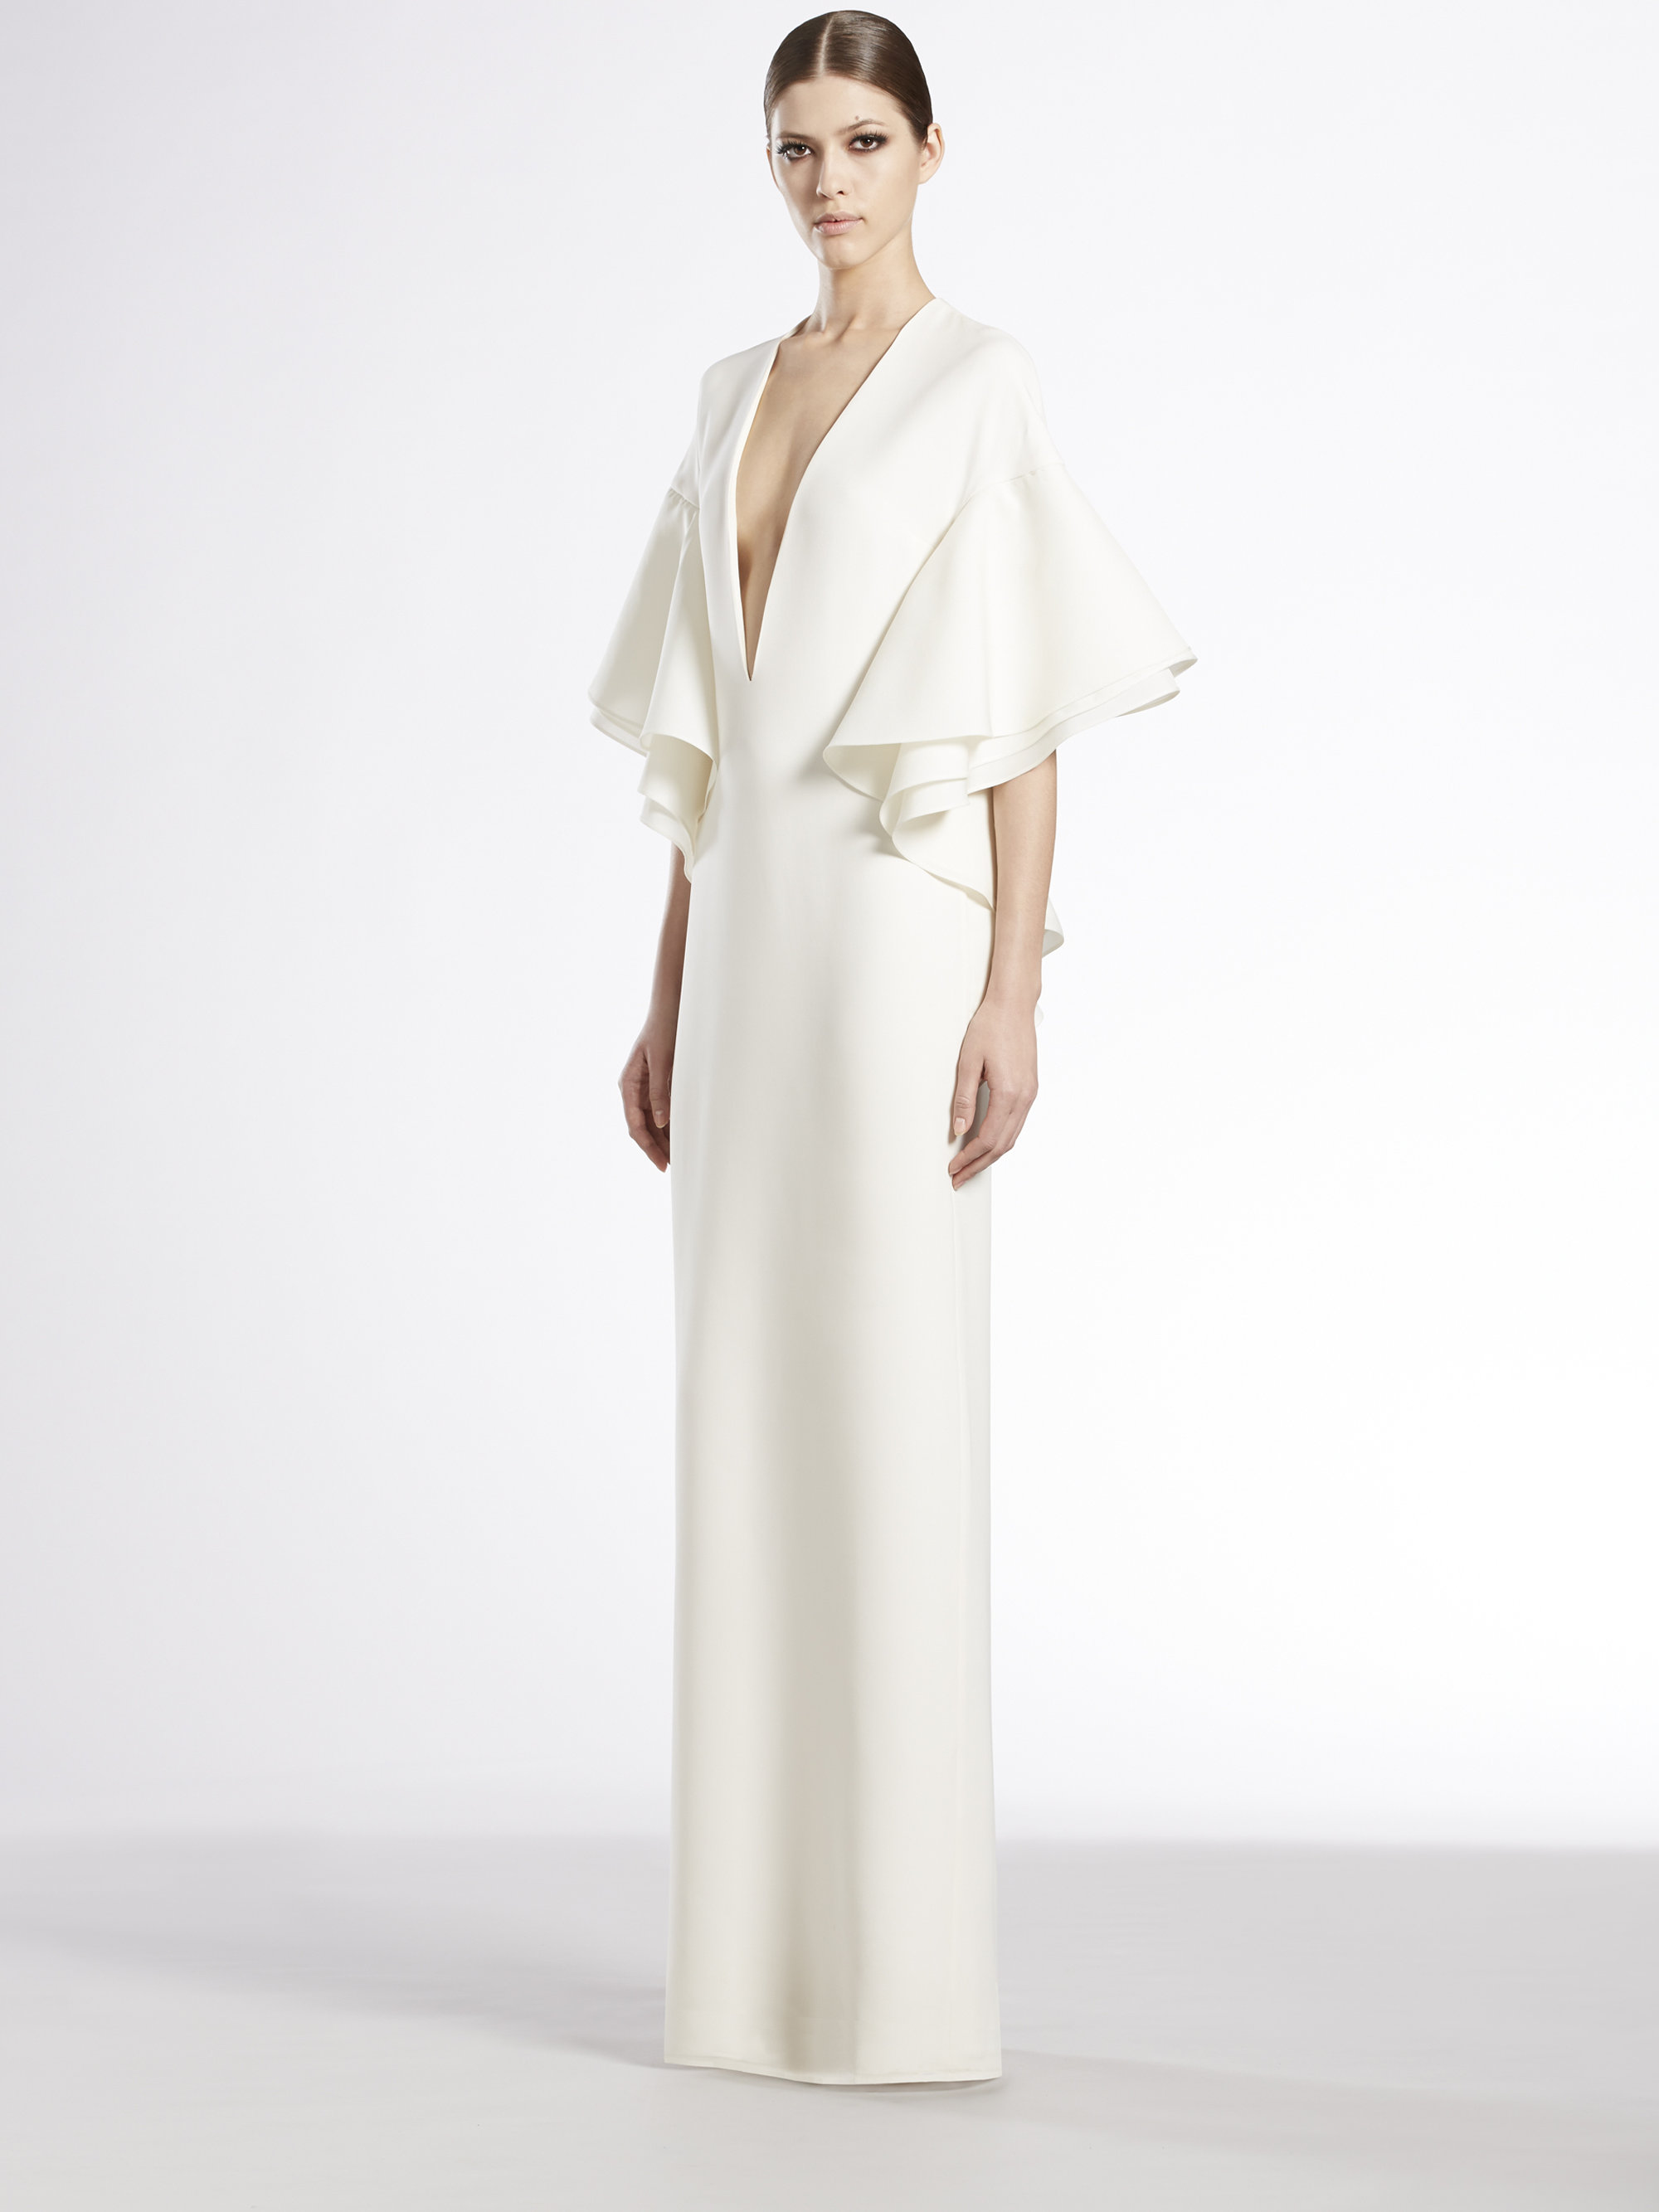 Lyst - Gucci Silk Cady Flounce Gown in White